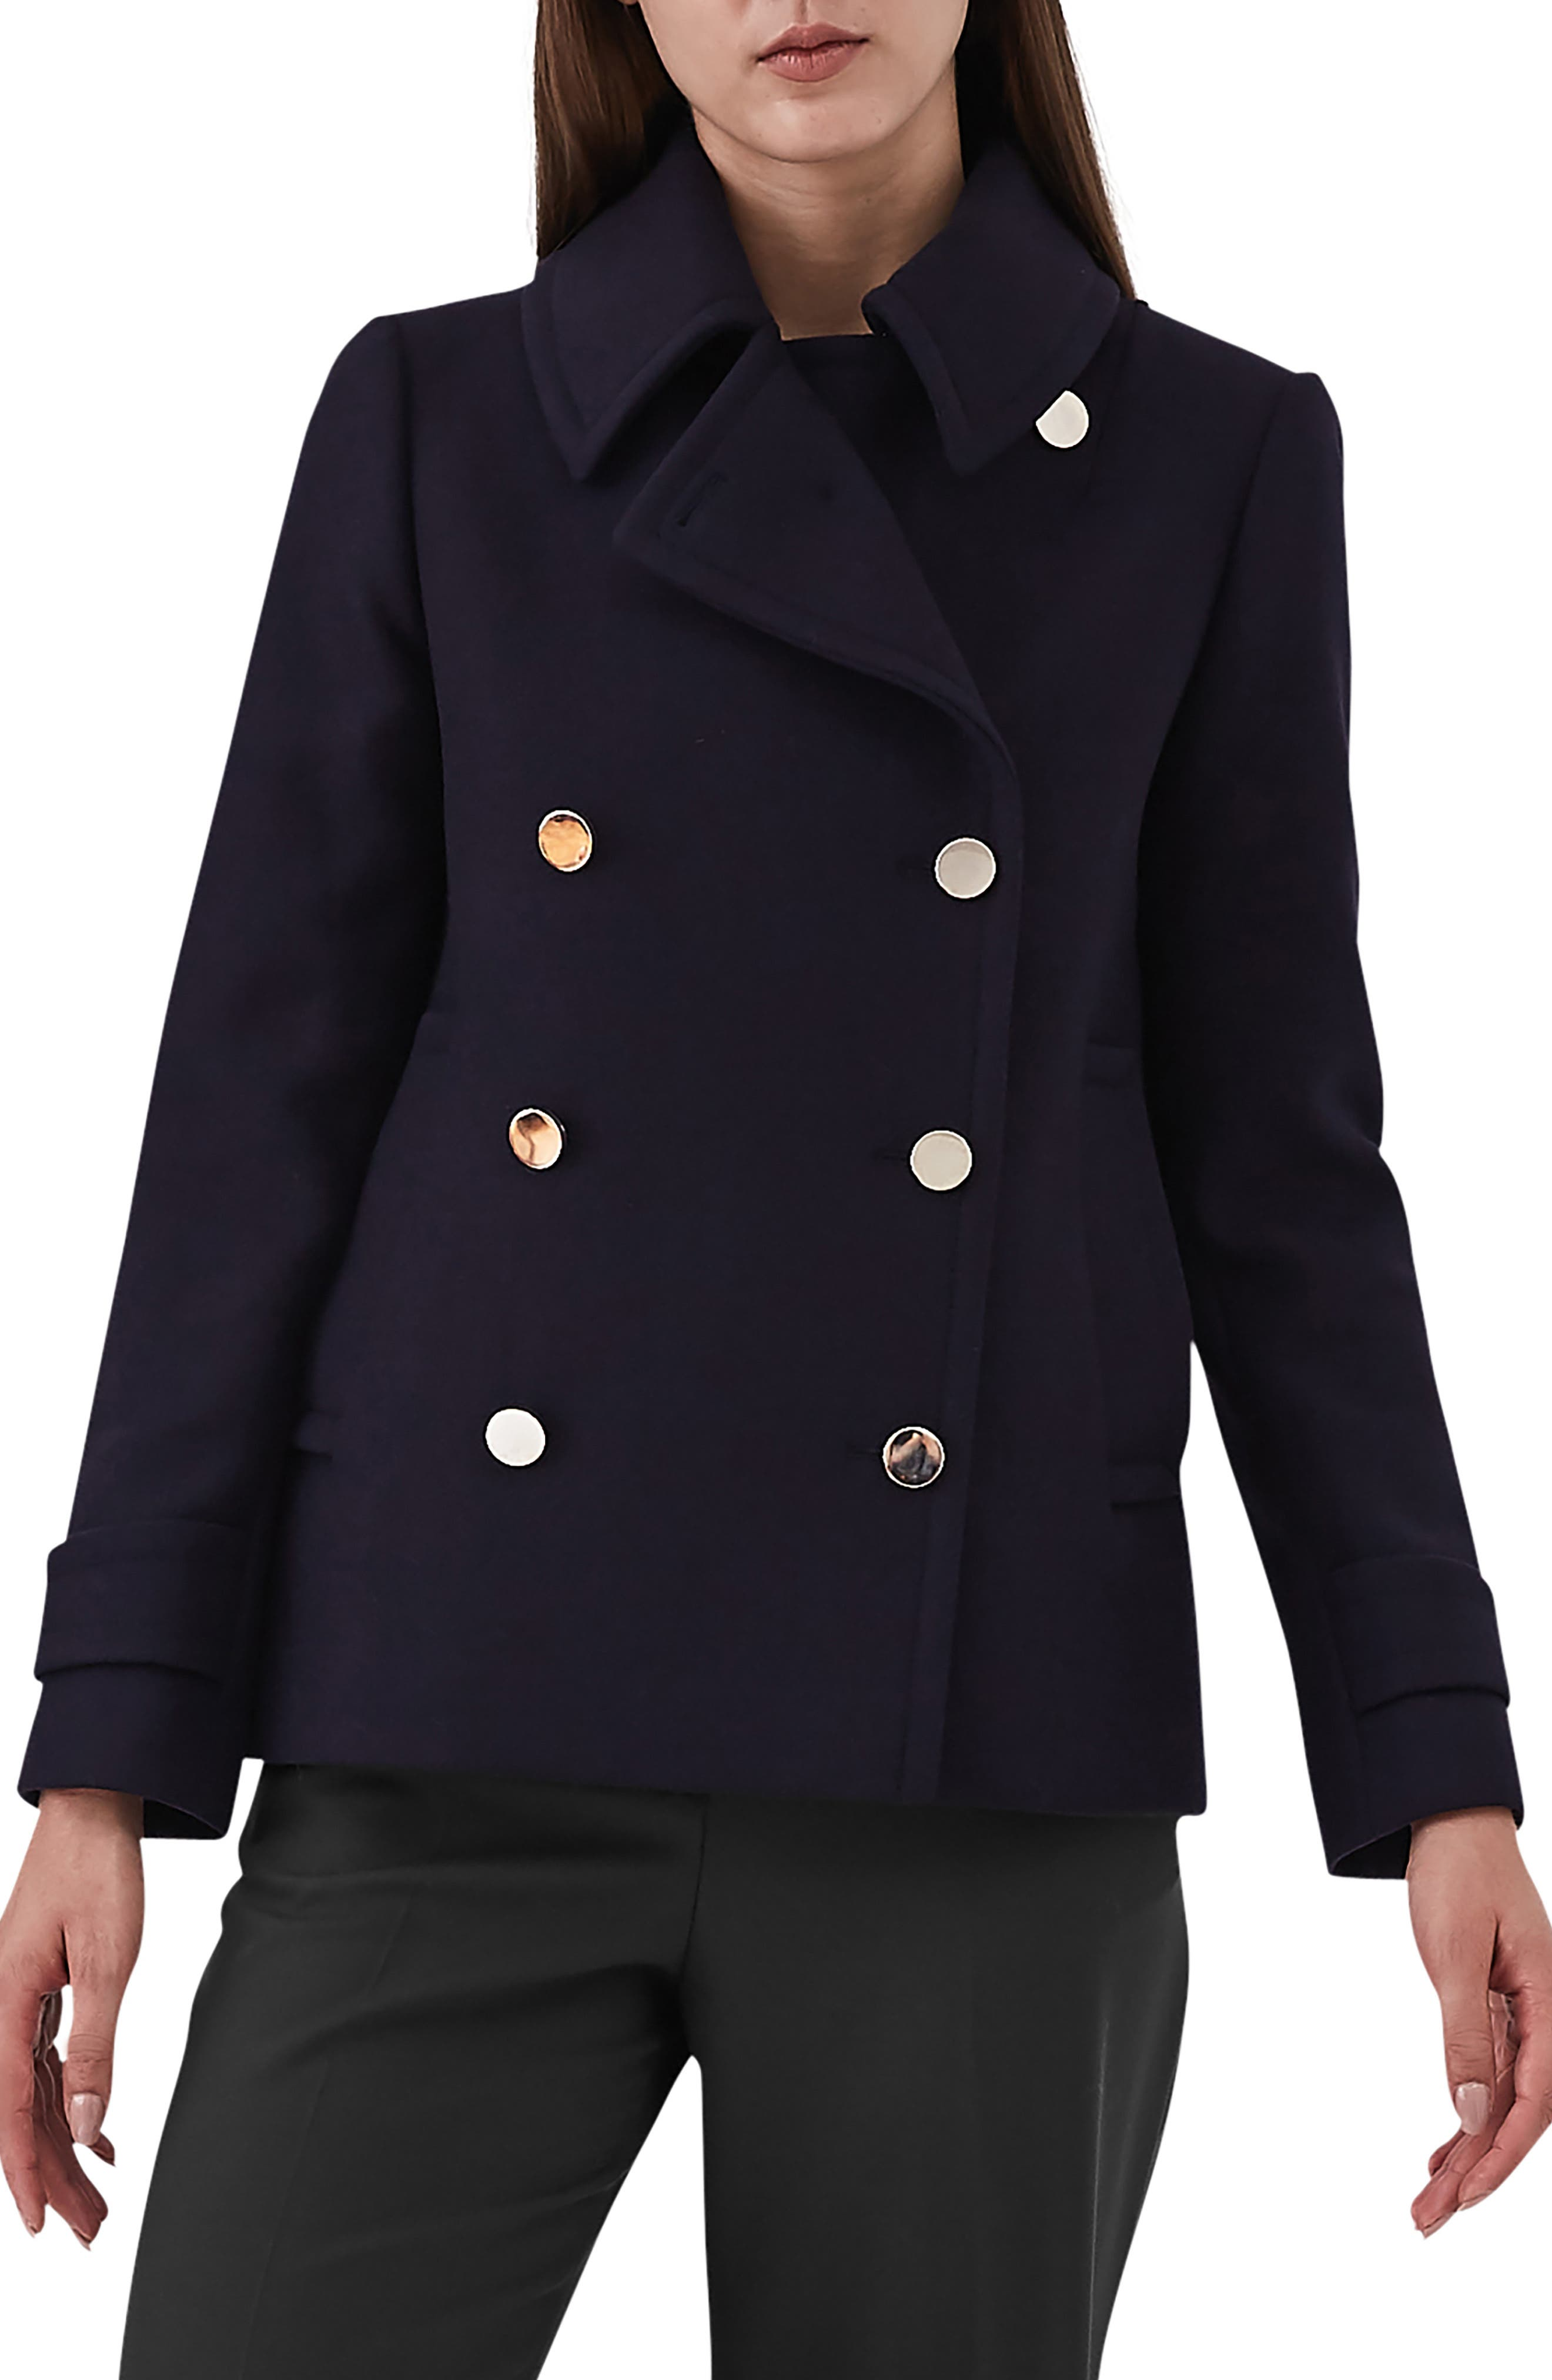 Becall Double Breasted Wool Blend Peacoat,                         Main,                         color, NAVY